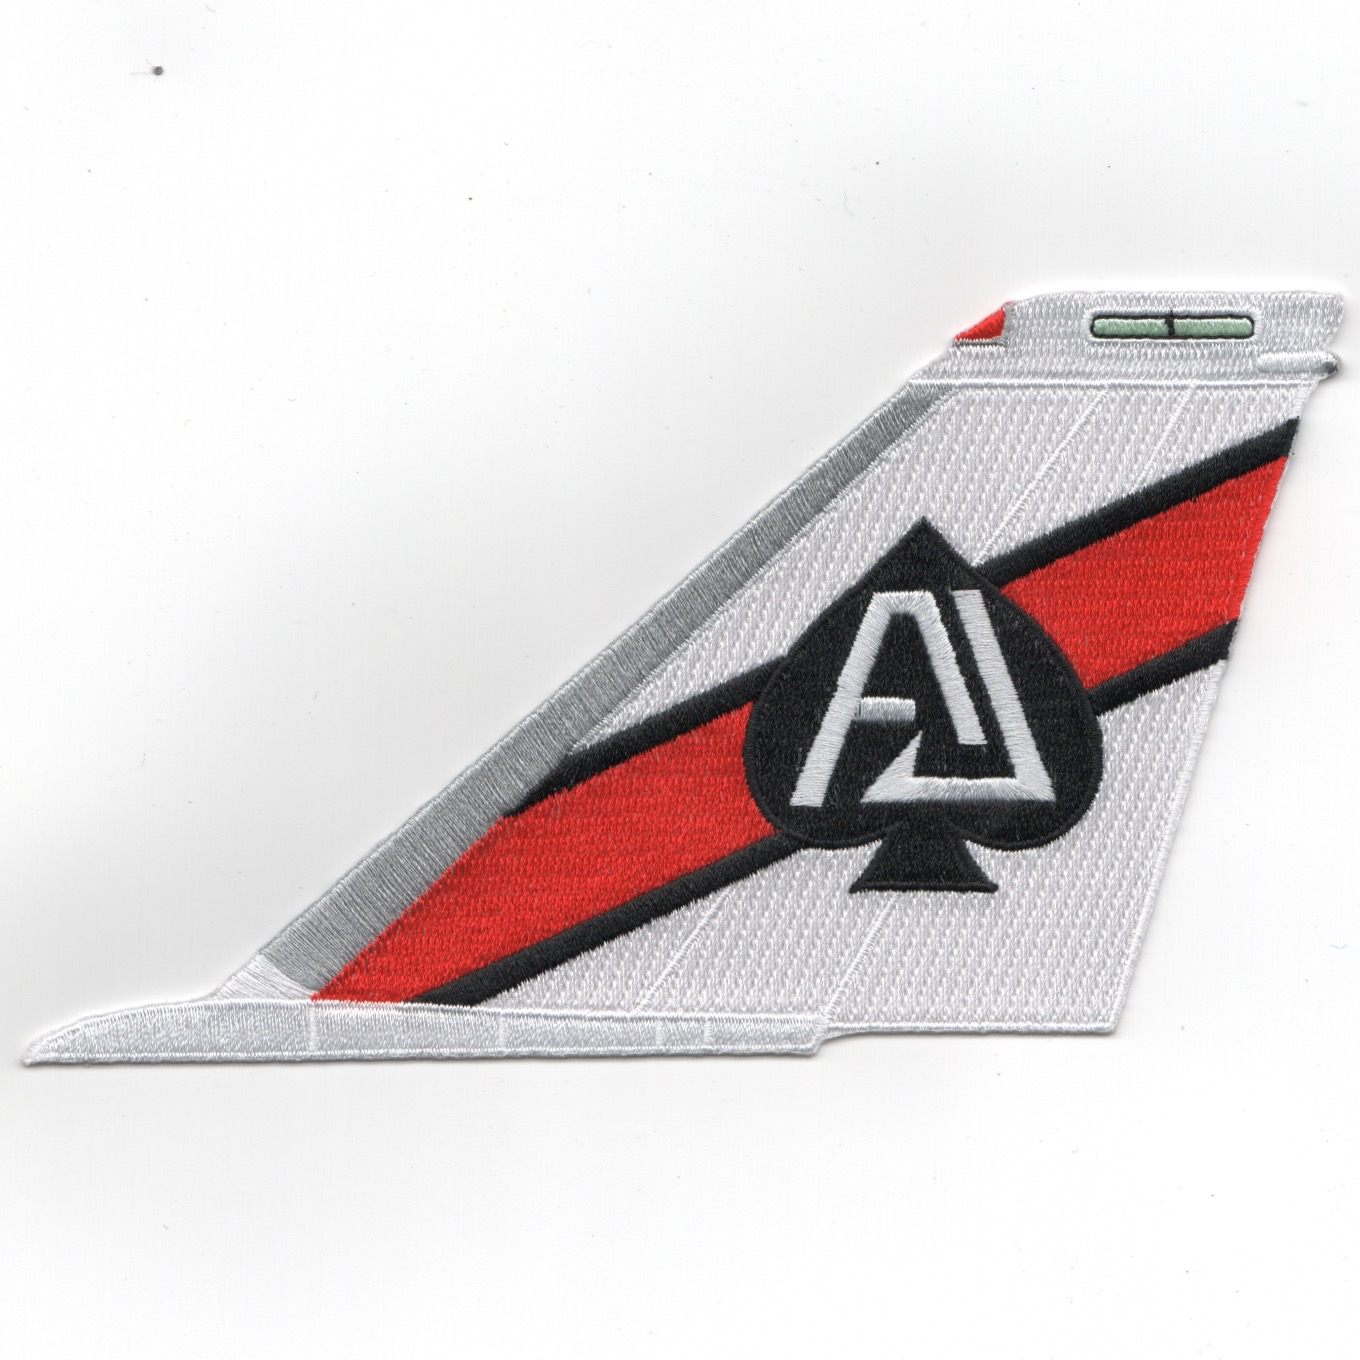 VF-41 F-14 'AJ' Tail (Red-White/No Text)